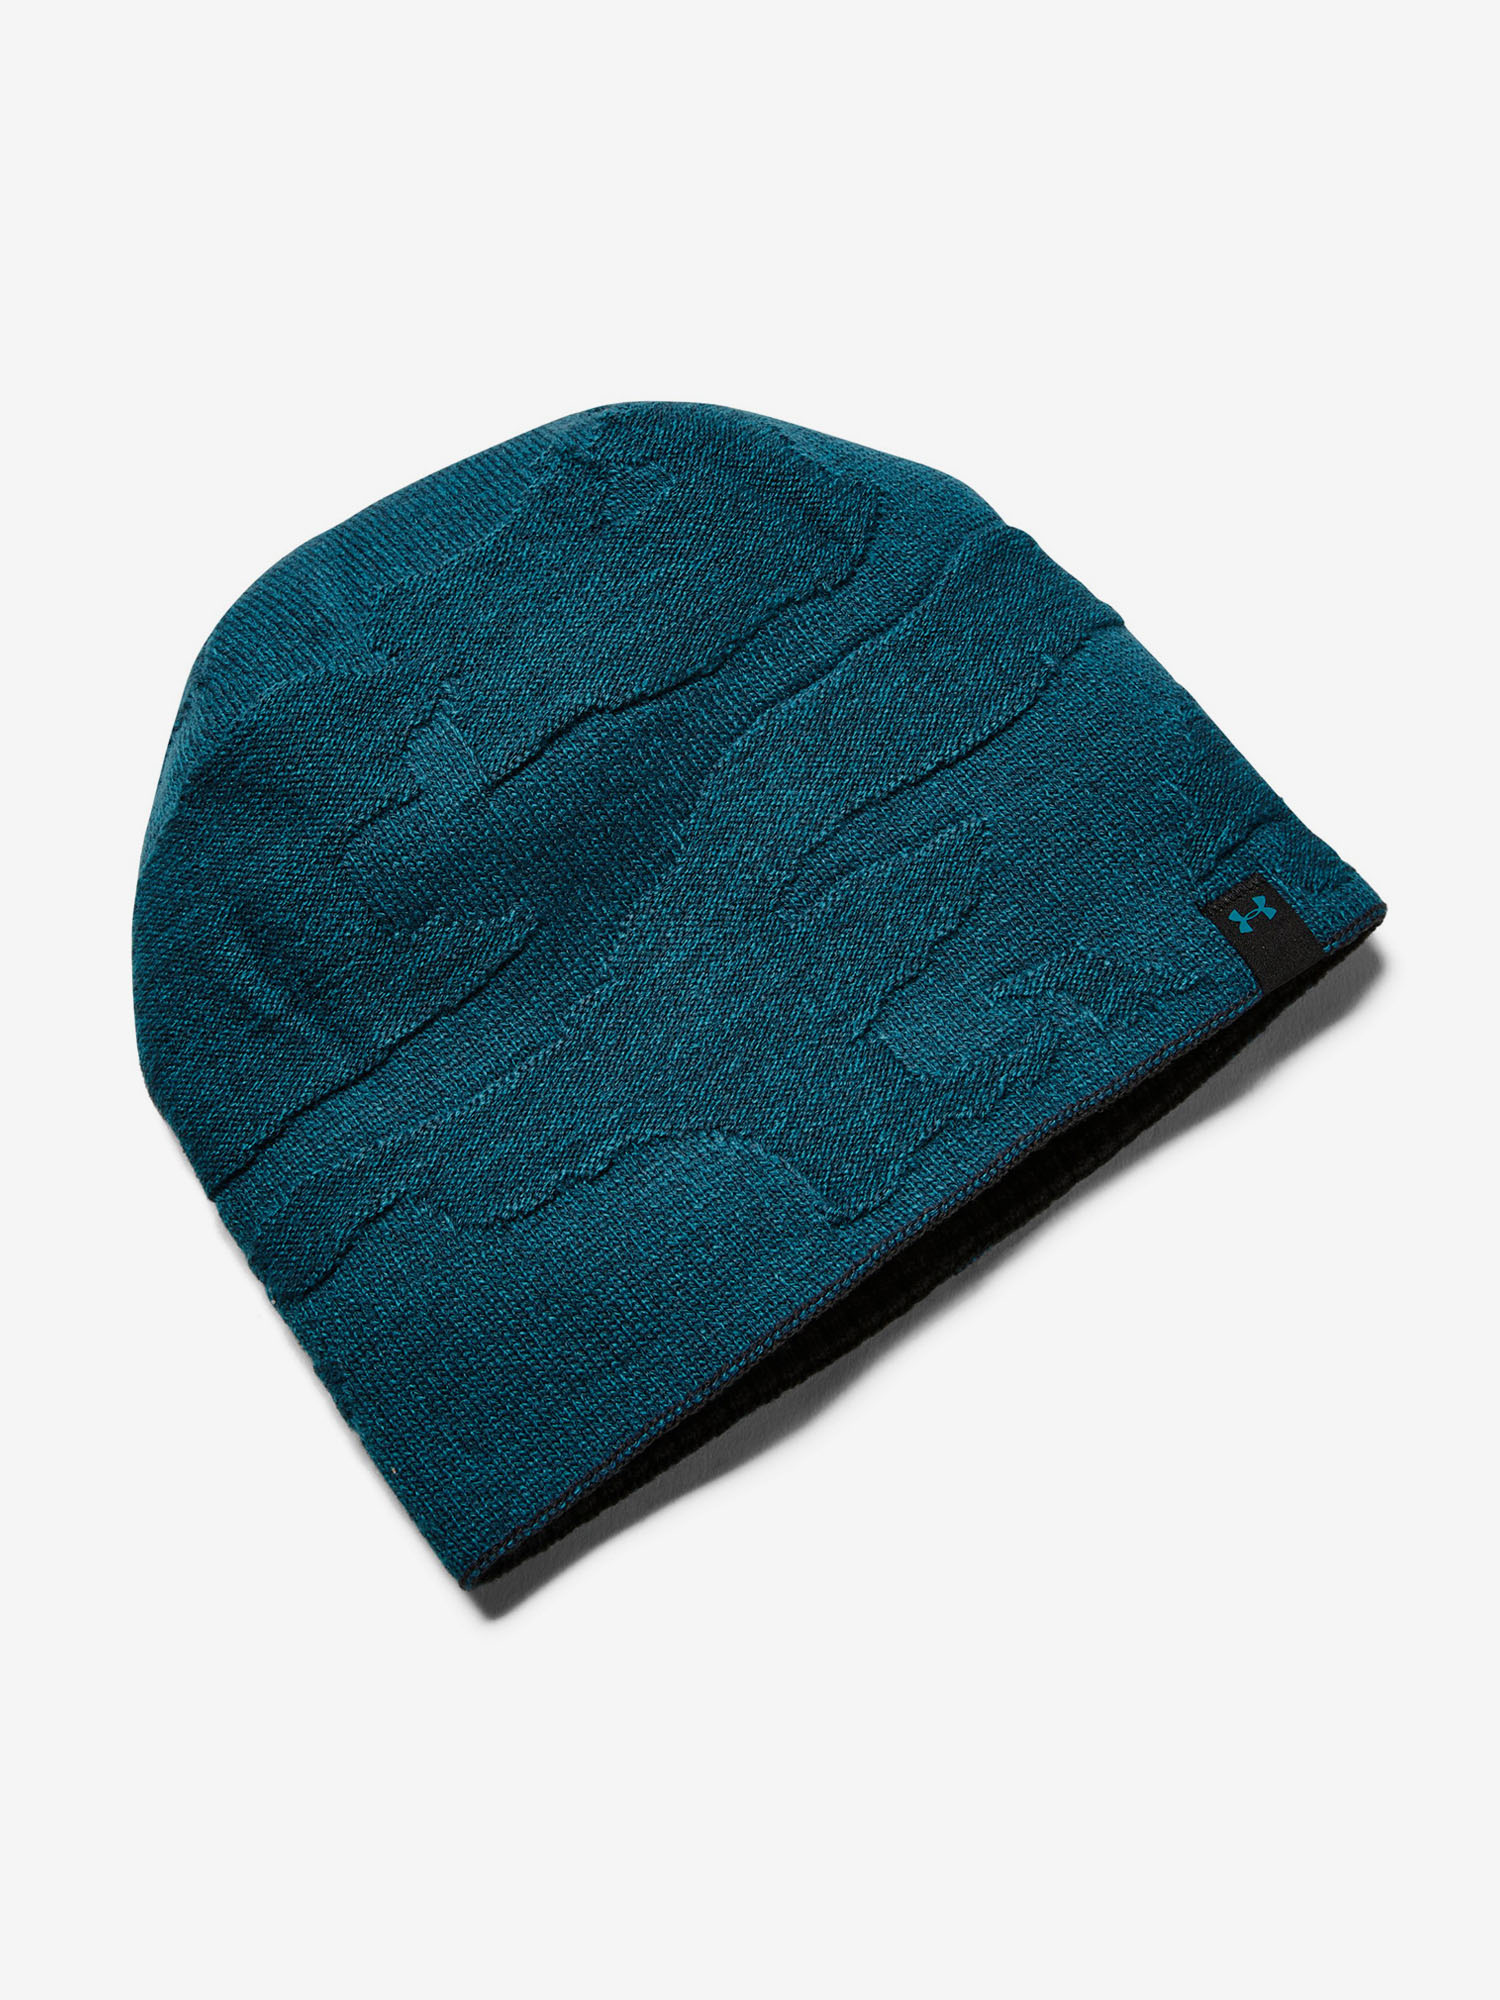 Čapica Under Armour Men'S Reversible Beanie-Grn (1)